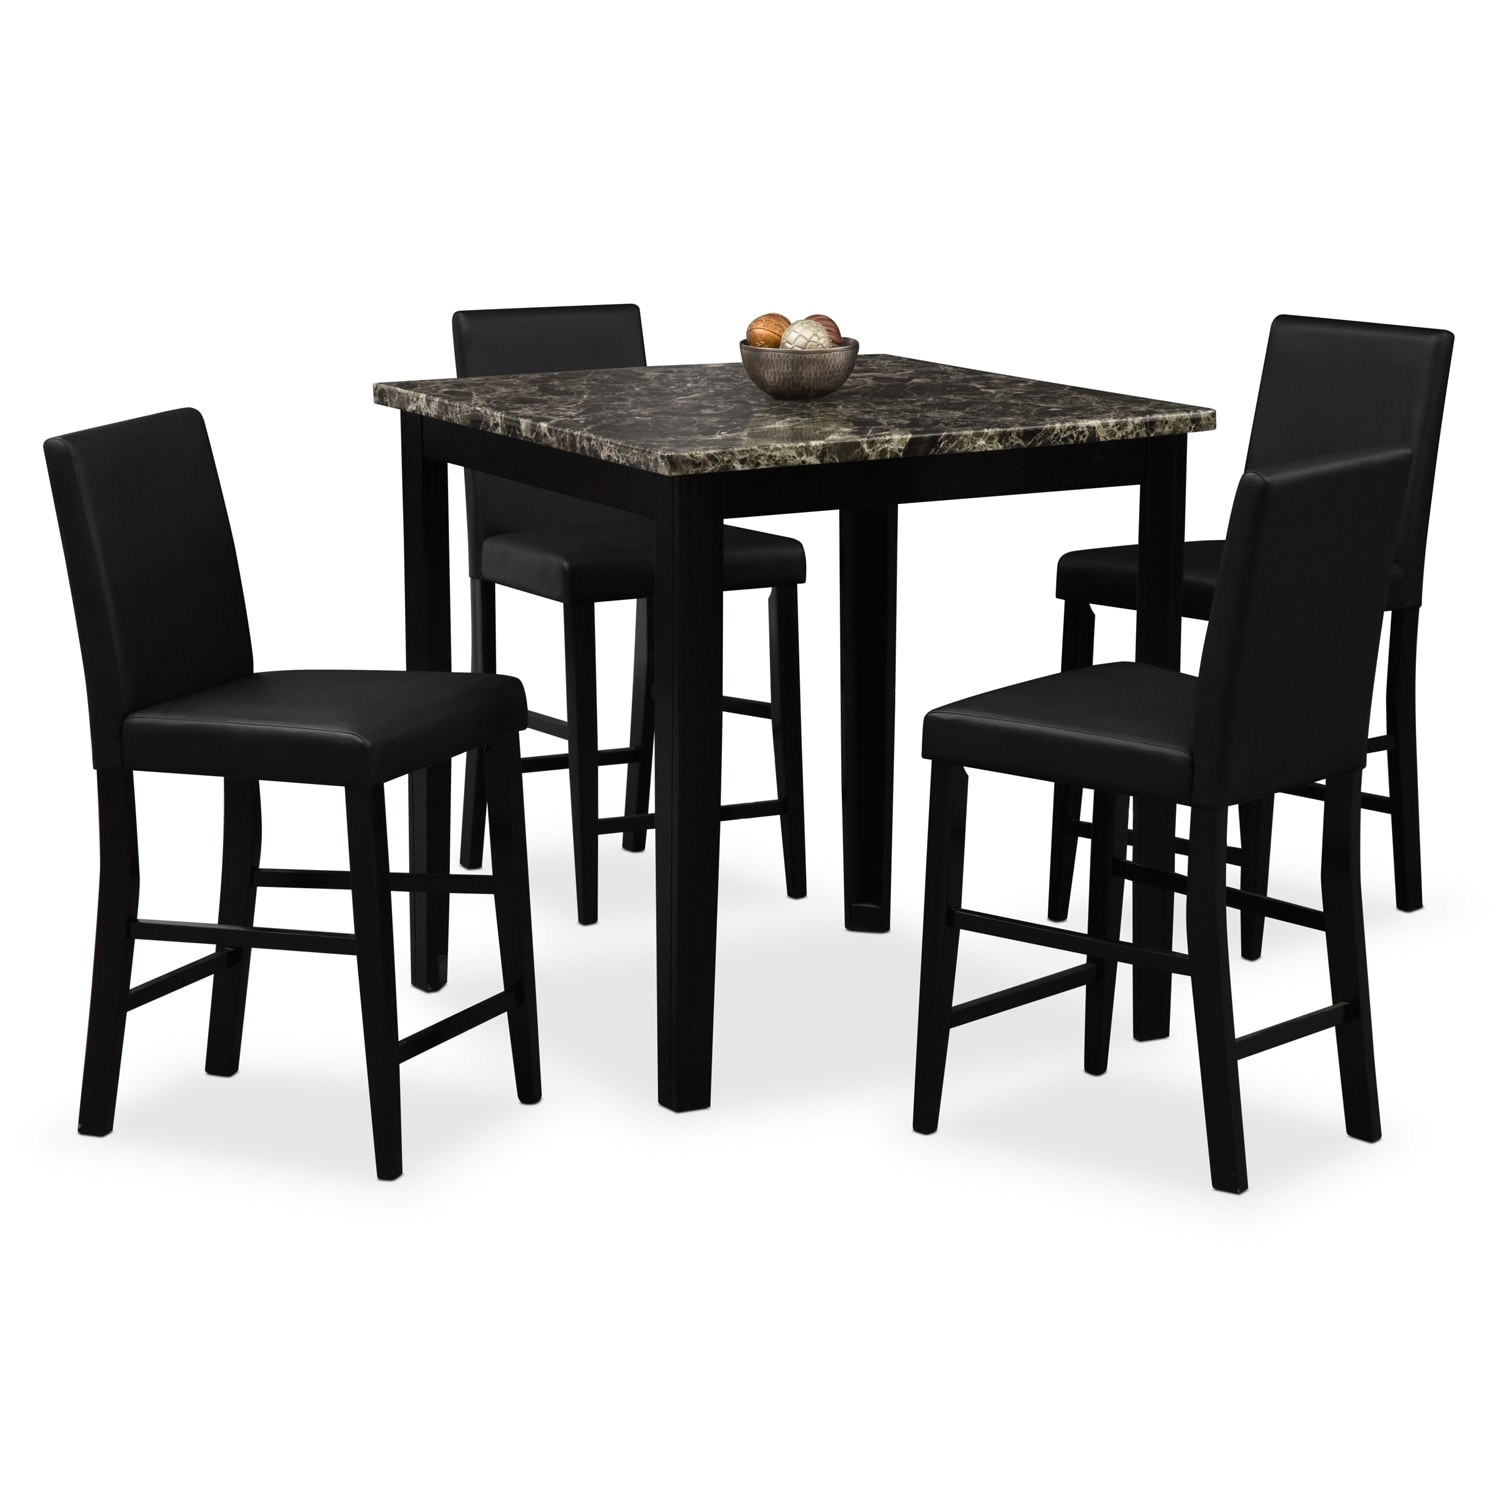 Counter Height Dining Room Chairs Shadow Counter Height Table And 4 Chairs Black Value